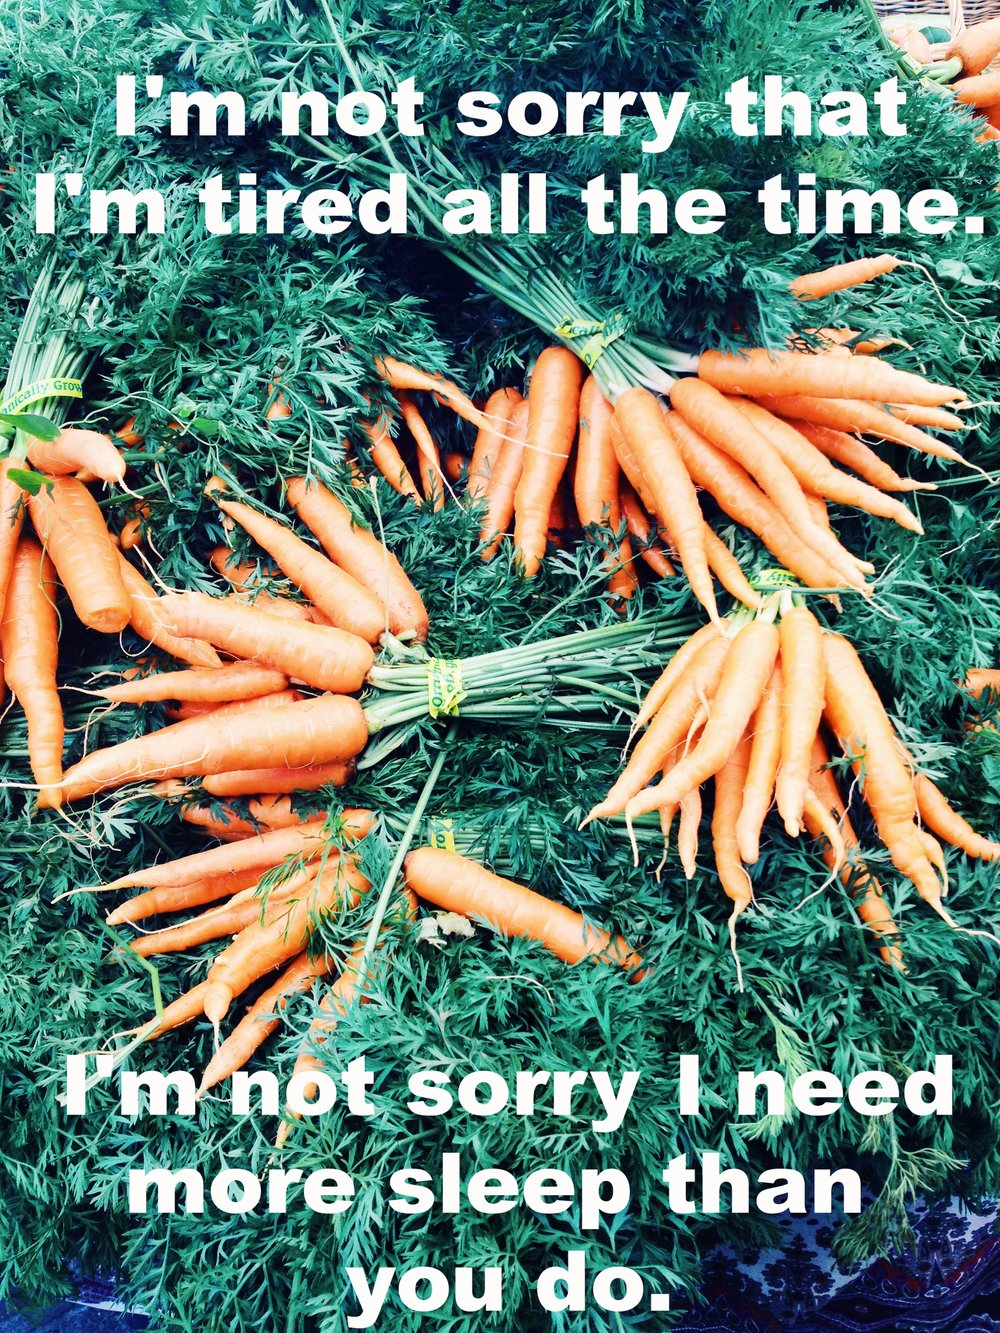 "Anonymous September 14 2016 Image of fresh carrots in bunches, layered on top of one another on a bed of the abundant carrot greens. ""I'm not sorry I'm tired all the time. I'm not sorry I need more sleep than you do"" is overlaid."